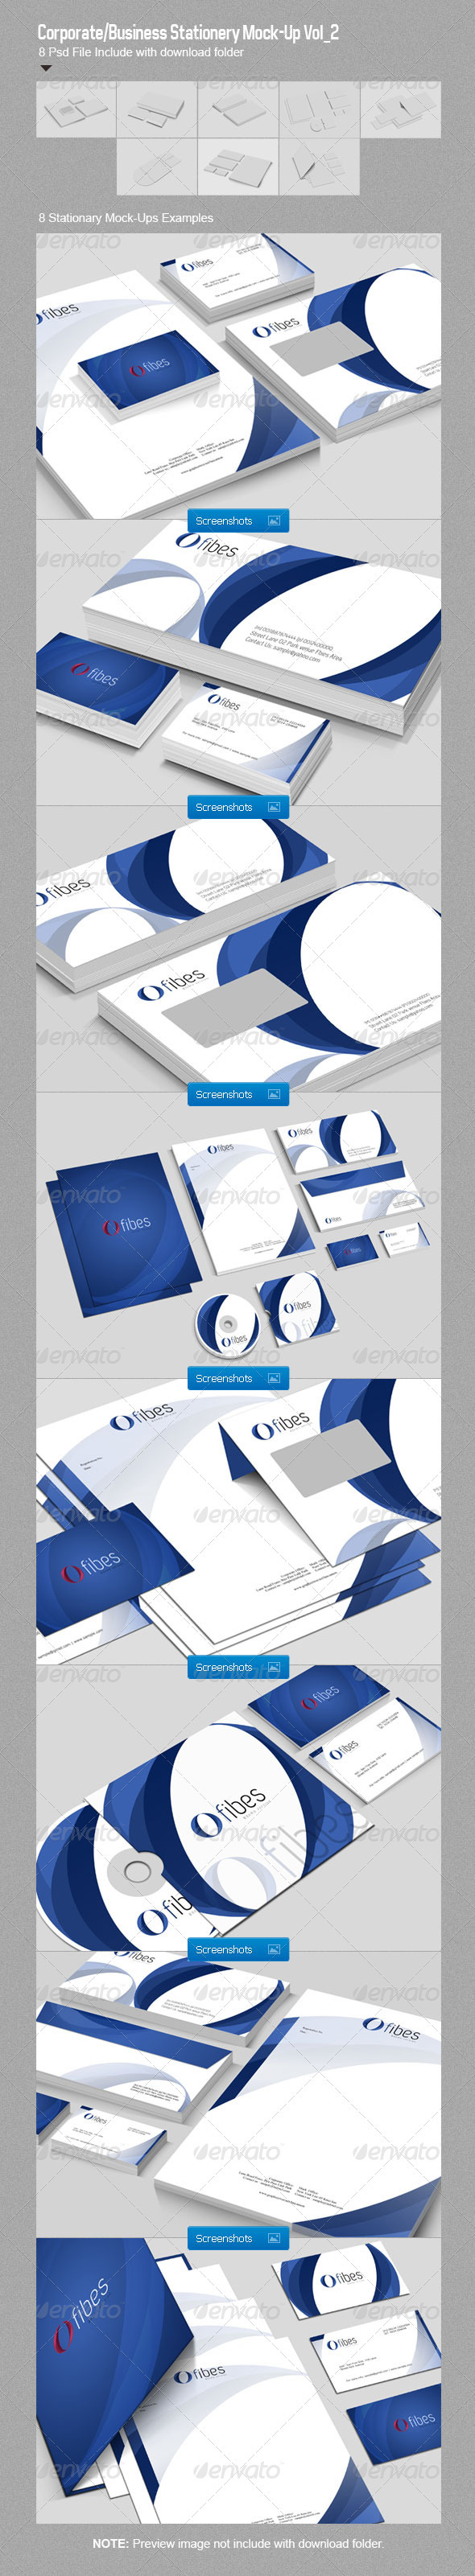 GraphicRiver Corporate Business Stationery Mock-Up Vol 2 2688207